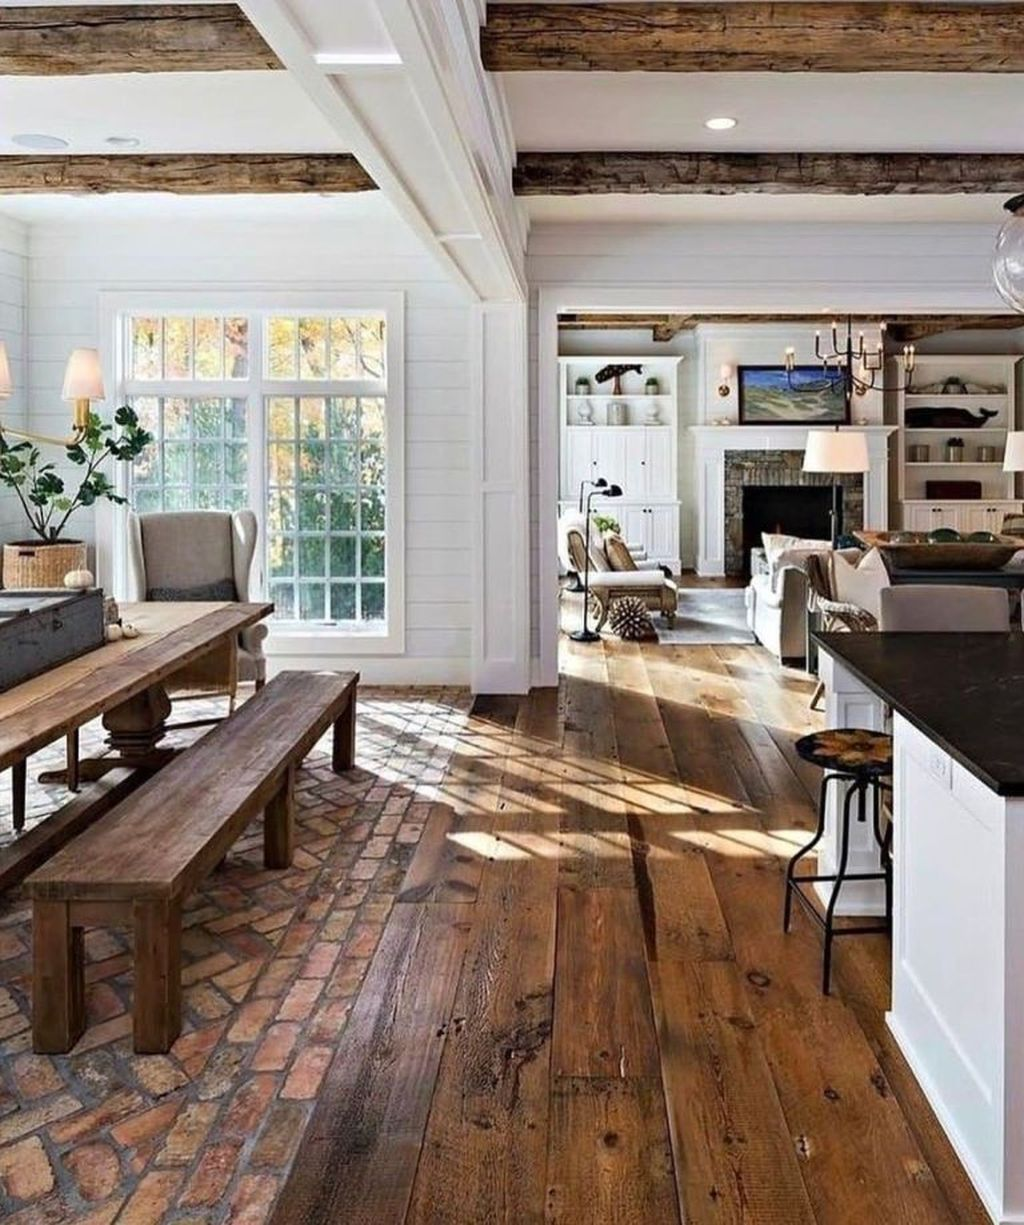 33 Modern Style Cozy Wooden Kitchen Design Ideas: 33 Comfy Small Home Interior Design Ideas With Very